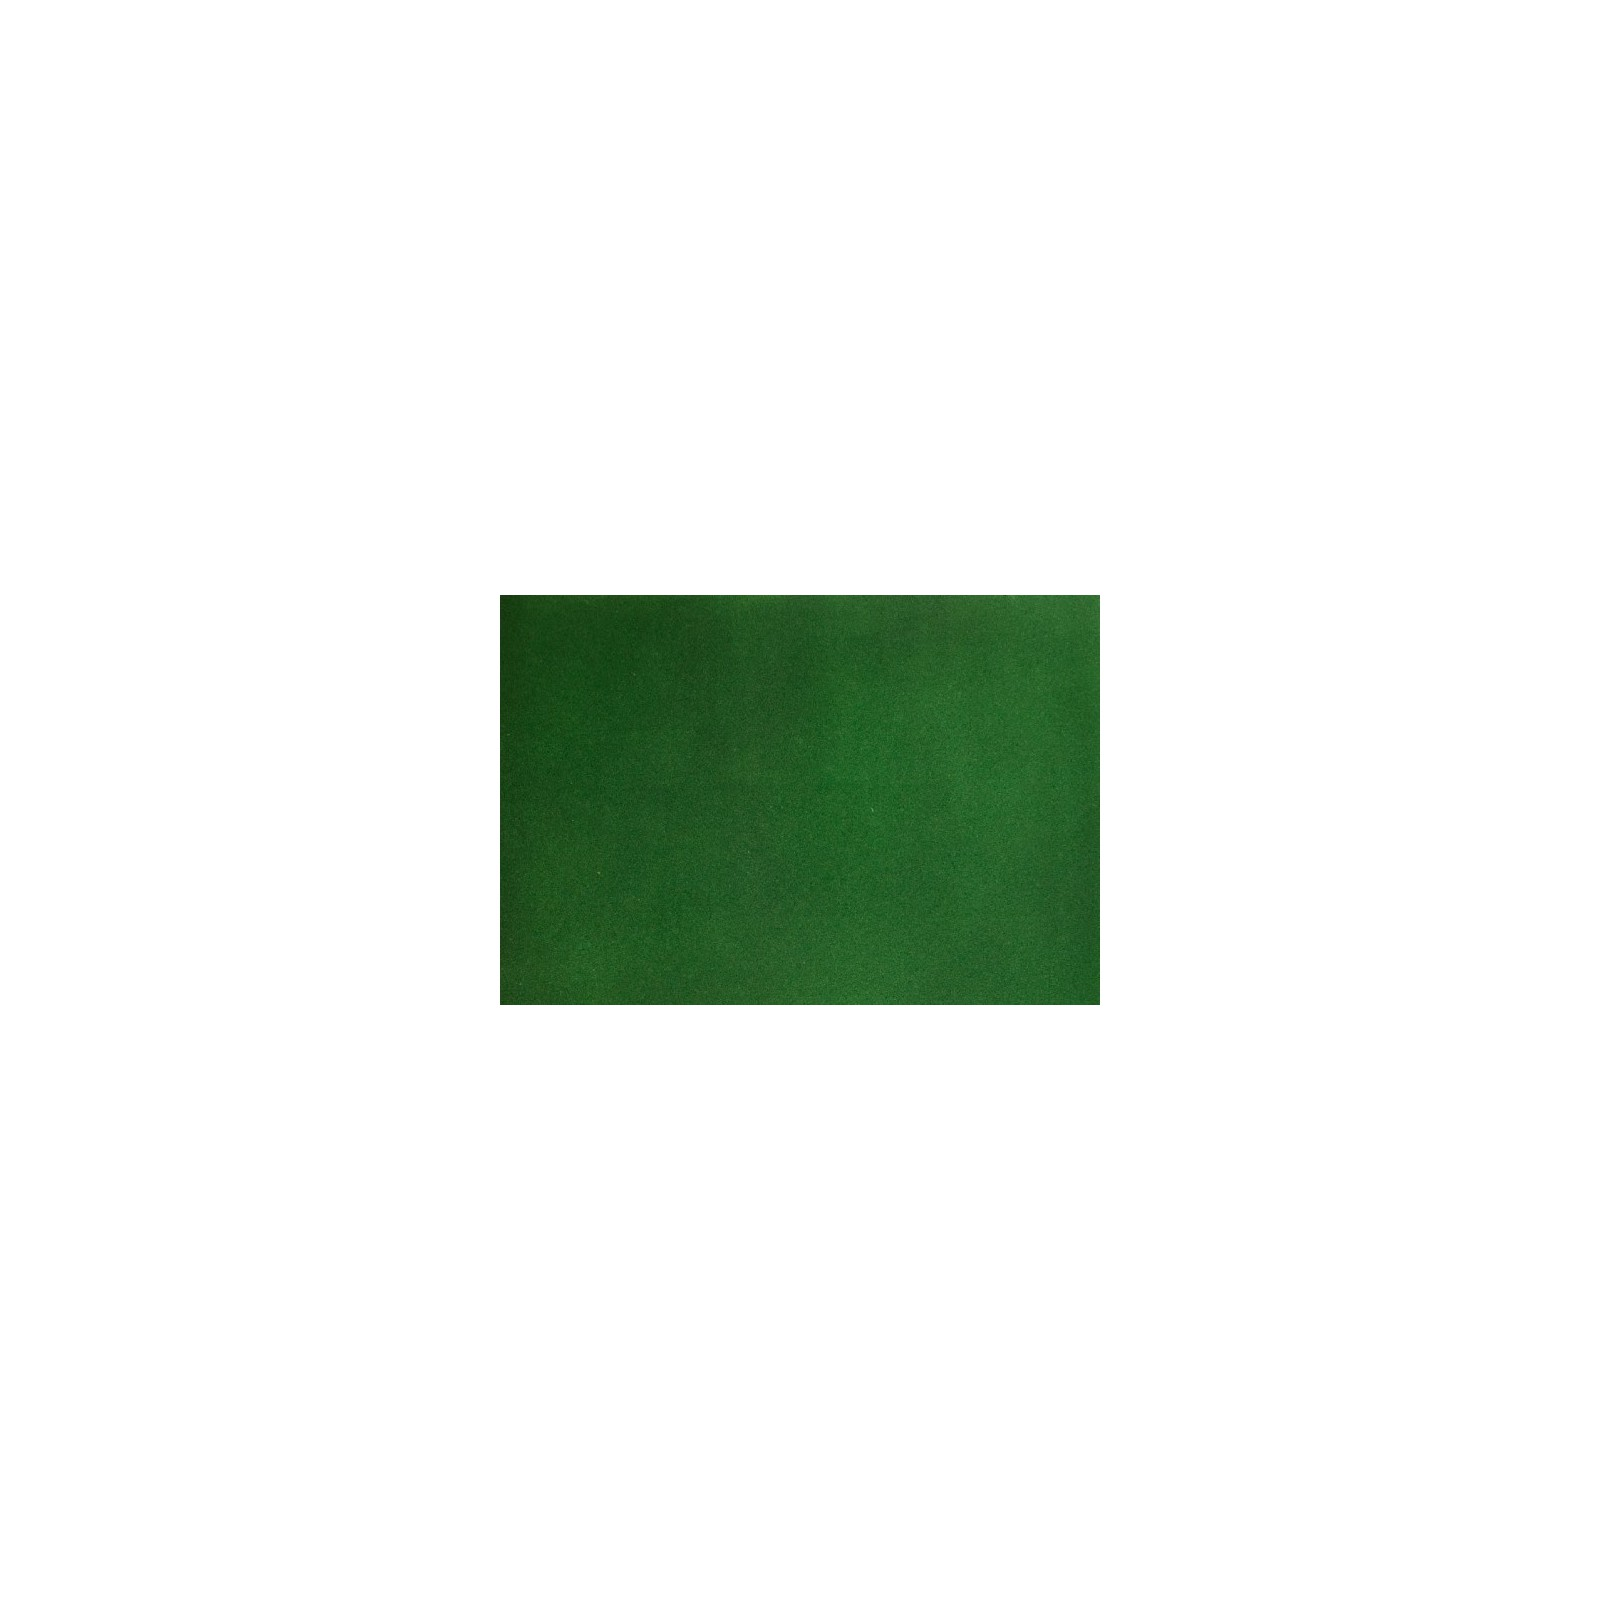 "GAMING MAT 72""x48"" Field Green - Perfect for your table - W40K WFB Bolt Action"